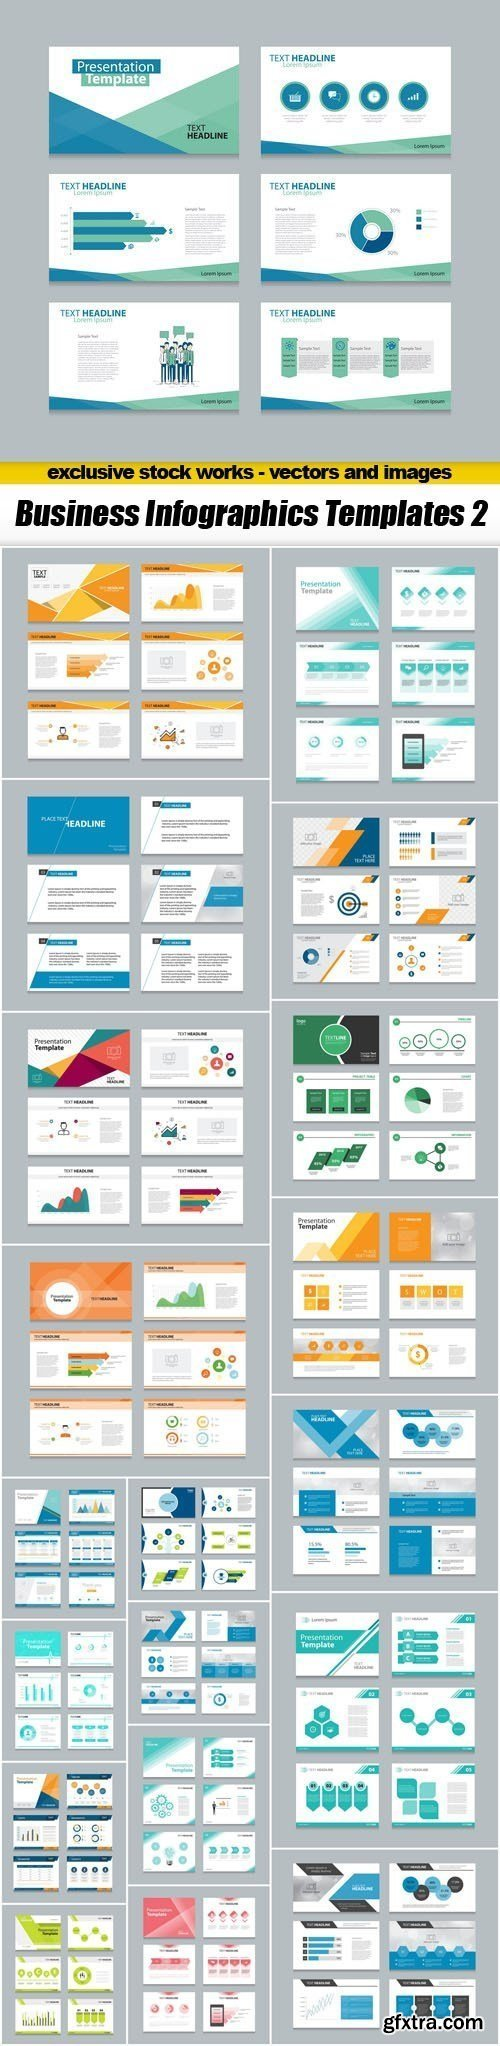 Business Infographics Templates 2 - 20xEPS